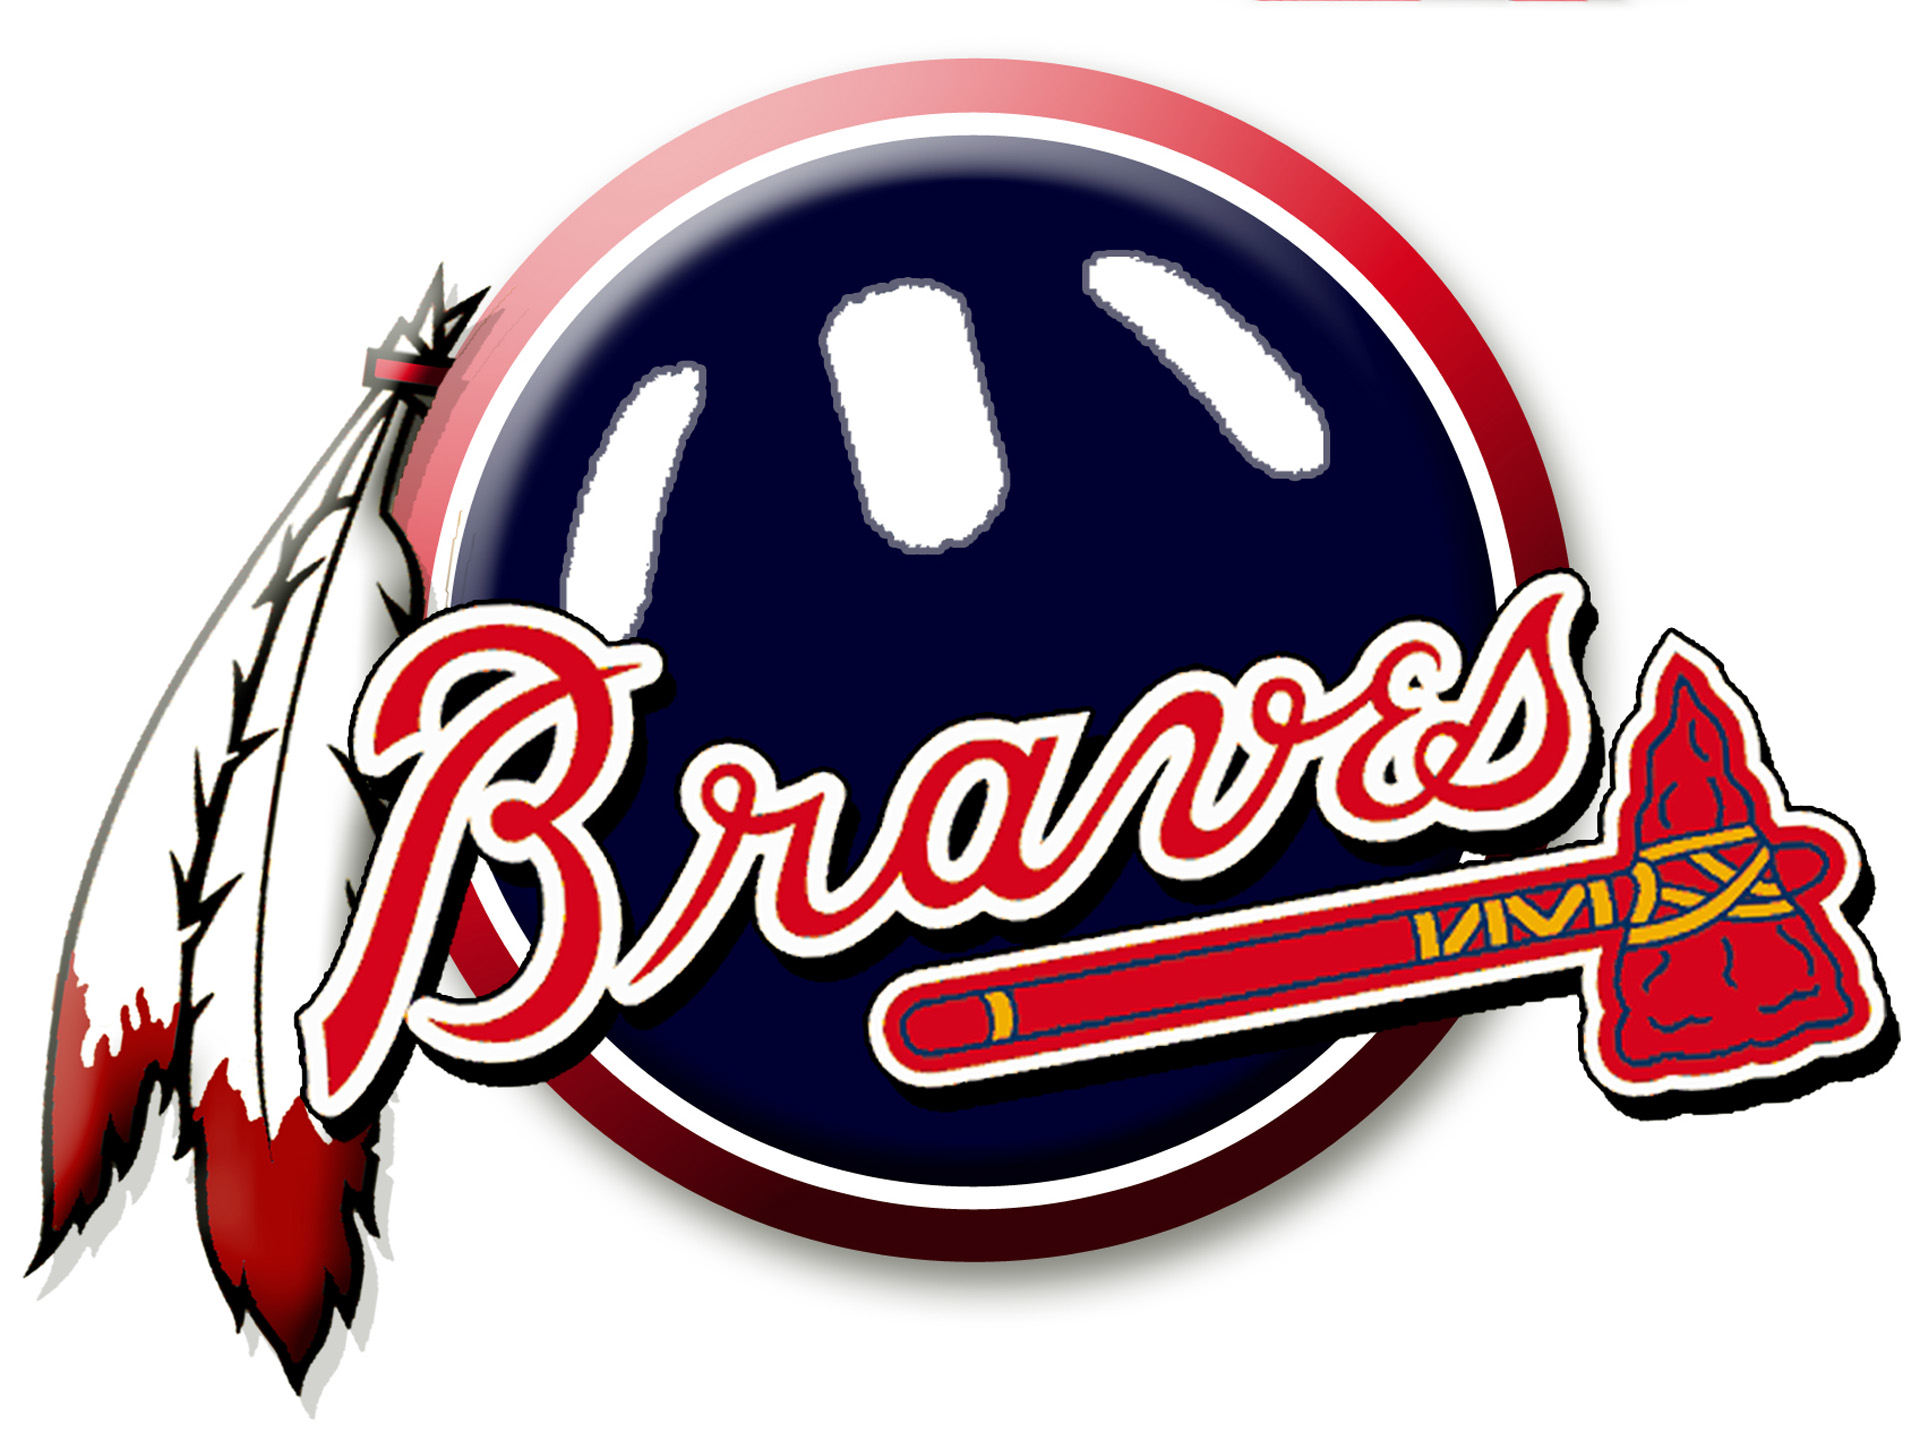 Atlanta Braves Logo 1920x1440 wallpaper